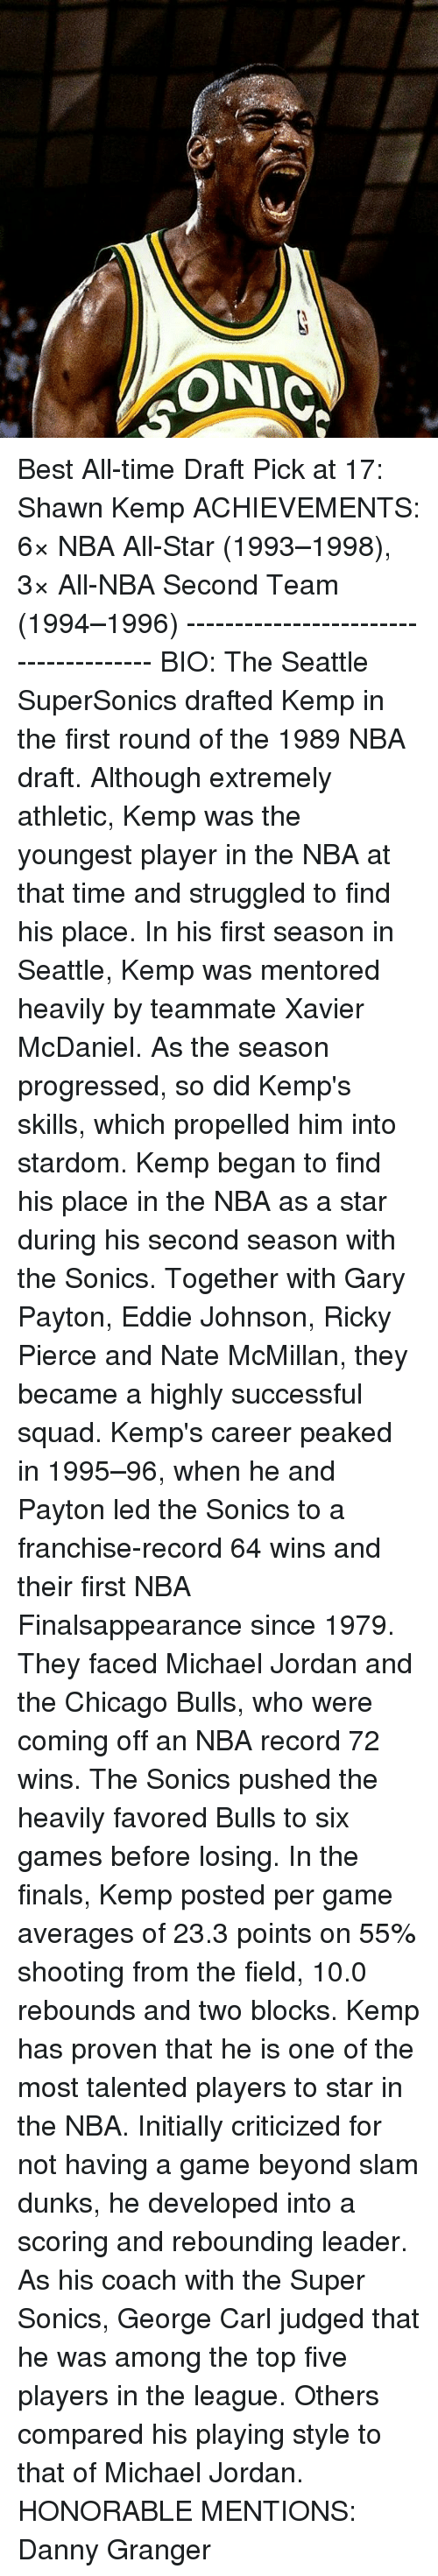 nba all stars: ONIC Best All-time Draft Pick at 17: Shawn Kemp ACHIEVEMENTS: 6× NBA All-Star (1993–1998), 3× All-NBA Second Team (1994–1996) -------------------------------------- BIO: The Seattle SuperSonics drafted Kemp in the first round of the 1989 NBA draft. Although extremely athletic, Kemp was the youngest player in the NBA at that time and struggled to find his place. In his first season in Seattle, Kemp was mentored heavily by teammate Xavier McDaniel. As the season progressed, so did Kemp's skills, which propelled him into stardom. Kemp began to find his place in the NBA as a star during his second season with the Sonics. Together with Gary Payton, Eddie Johnson, Ricky Pierce and Nate McMillan, they became a highly successful squad. Kemp's career peaked in 1995–96, when he and Payton led the Sonics to a franchise-record 64 wins and their first NBA Finalsappearance since 1979. They faced Michael Jordan and the Chicago Bulls, who were coming off an NBA record 72 wins. The Sonics pushed the heavily favored Bulls to six games before losing. In the finals, Kemp posted per game averages of 23.3 points on 55% shooting from the field, 10.0 rebounds and two blocks. Kemp has proven that he is one of the most talented players to star in the NBA. Initially criticized for not having a game beyond slam dunks, he developed into a scoring and rebounding leader. As his coach with the Super Sonics, George Carl judged that he was among the top five players in the league. Others compared his playing style to that of Michael Jordan. HONORABLE MENTIONS: Danny Granger